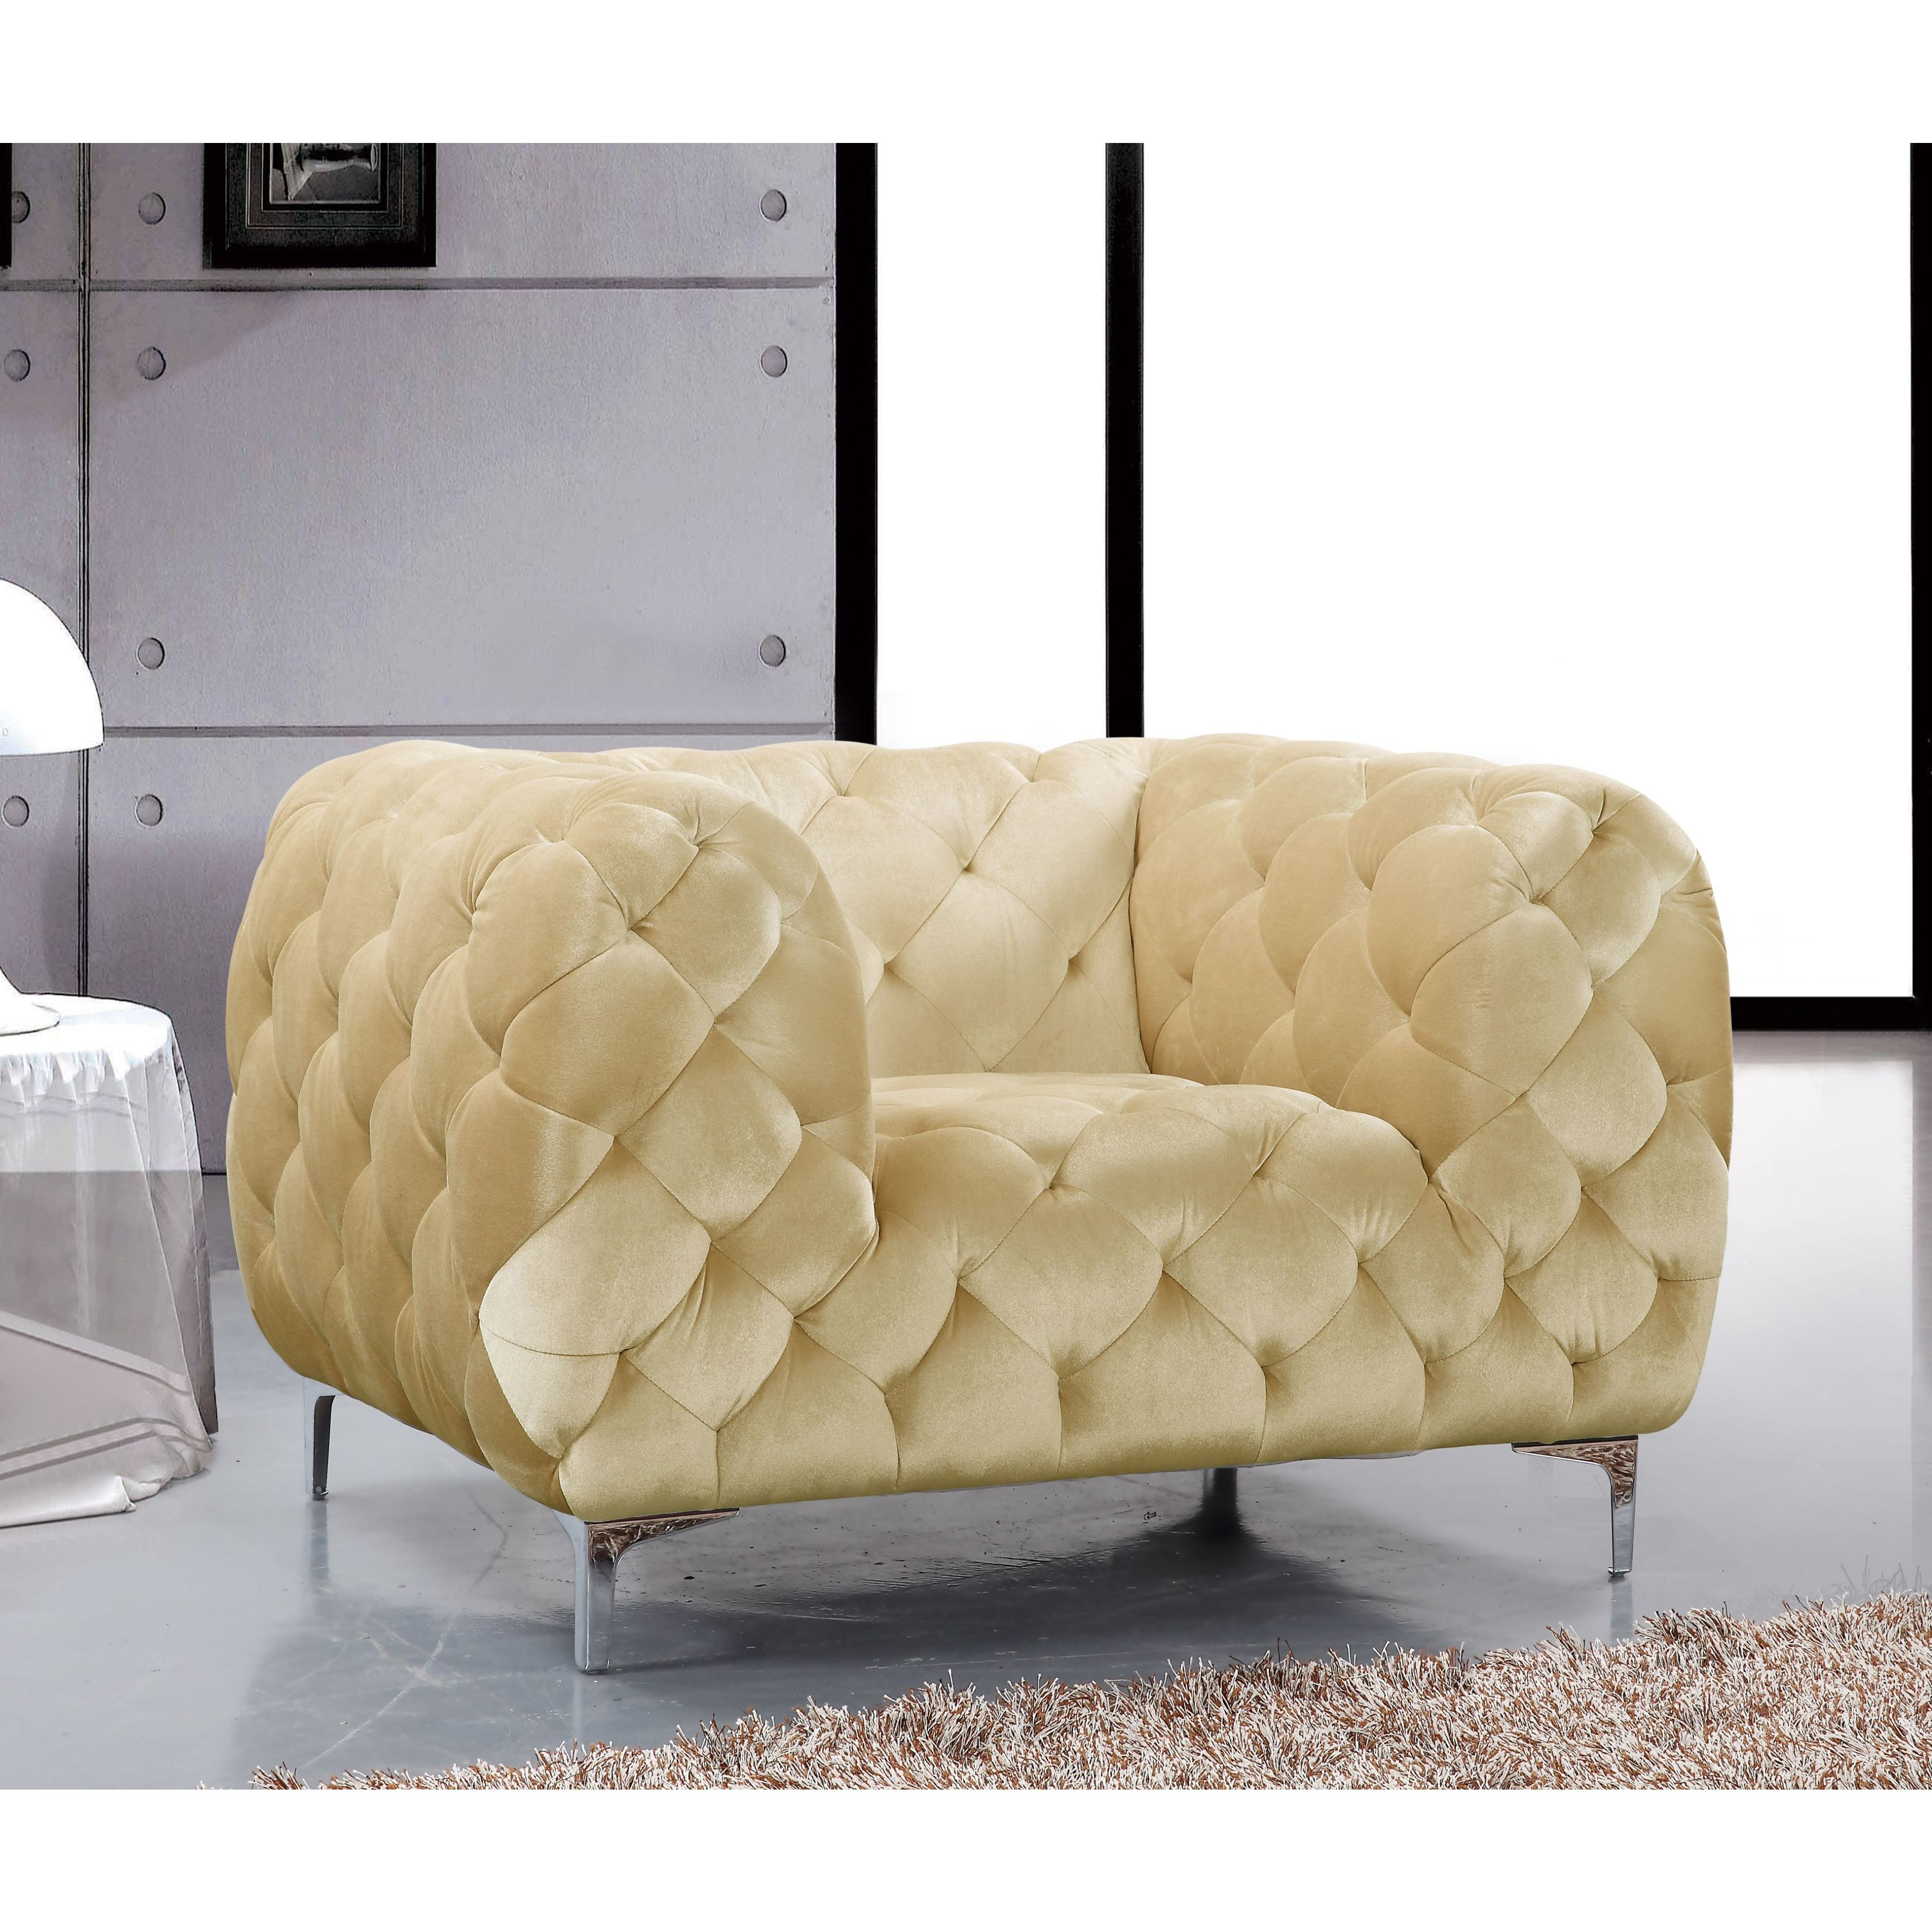 Preferred Shop Meridian Mercer Beige Velvet Tufted Chair – Free Shipping Today For Mercer Foam Oversized Sofa Chairs (View 15 of 20)